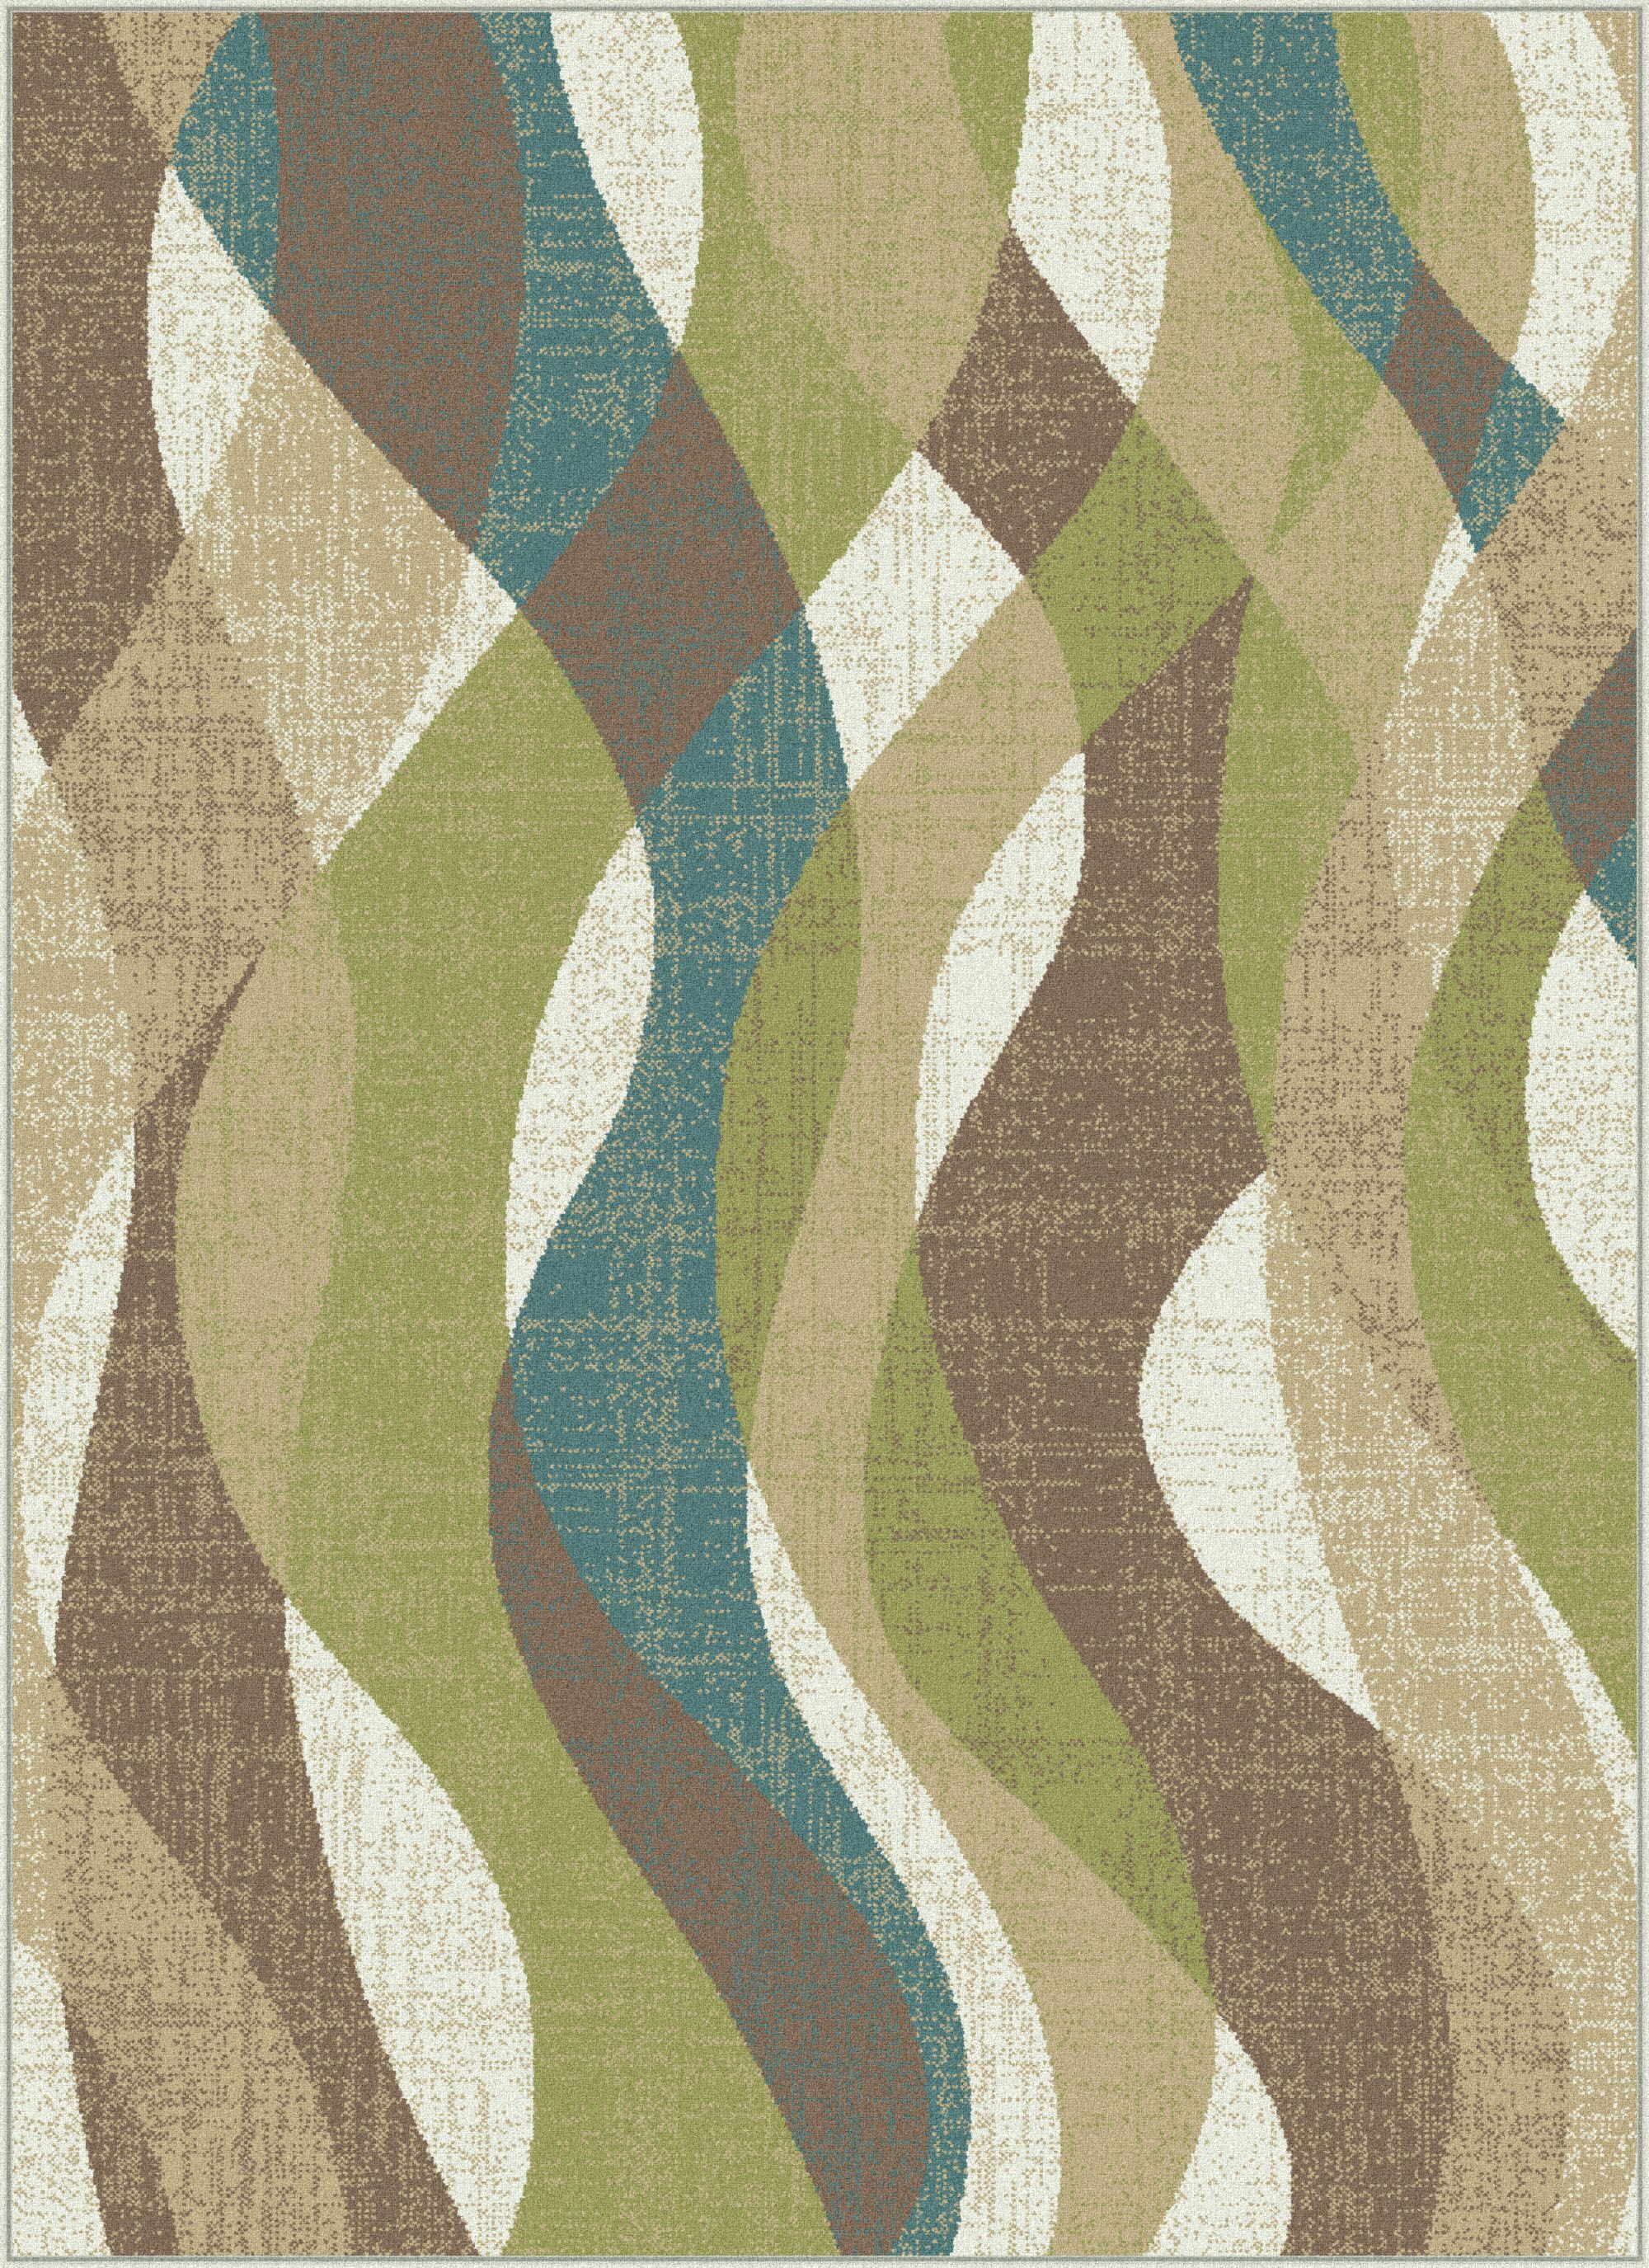 O'Malley Ivory Area Rug Rug Size: 5'3'' x 7'3''